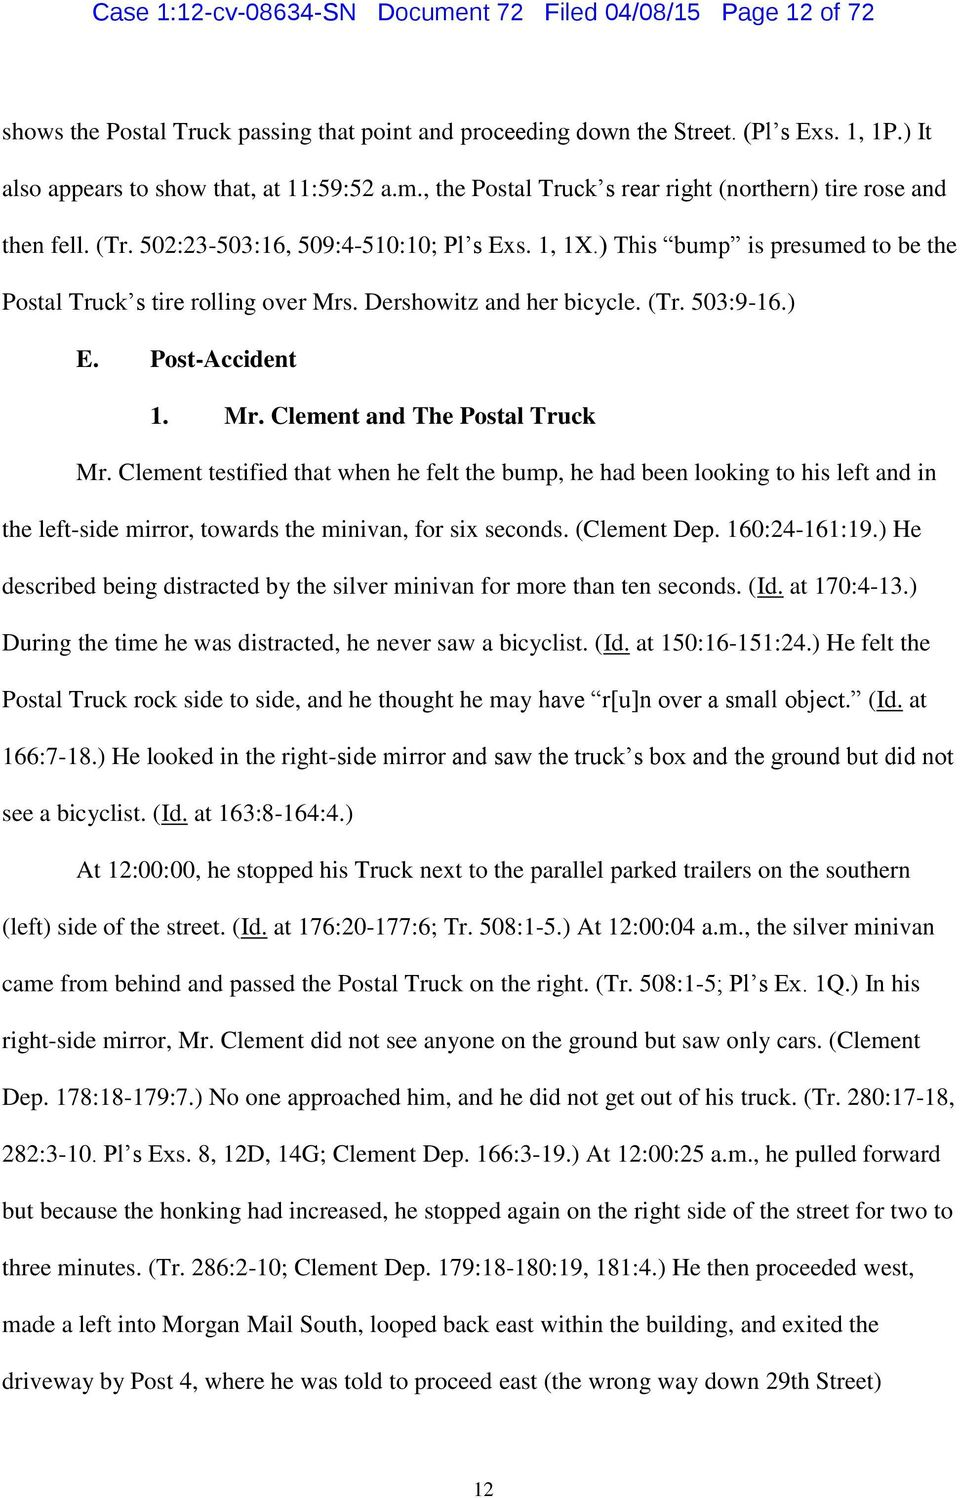 Dershowitz and her bicycle. (Tr. 503:9-16.) E. Post-Accident 1. Mr. Clement and The Postal Truck Mr.